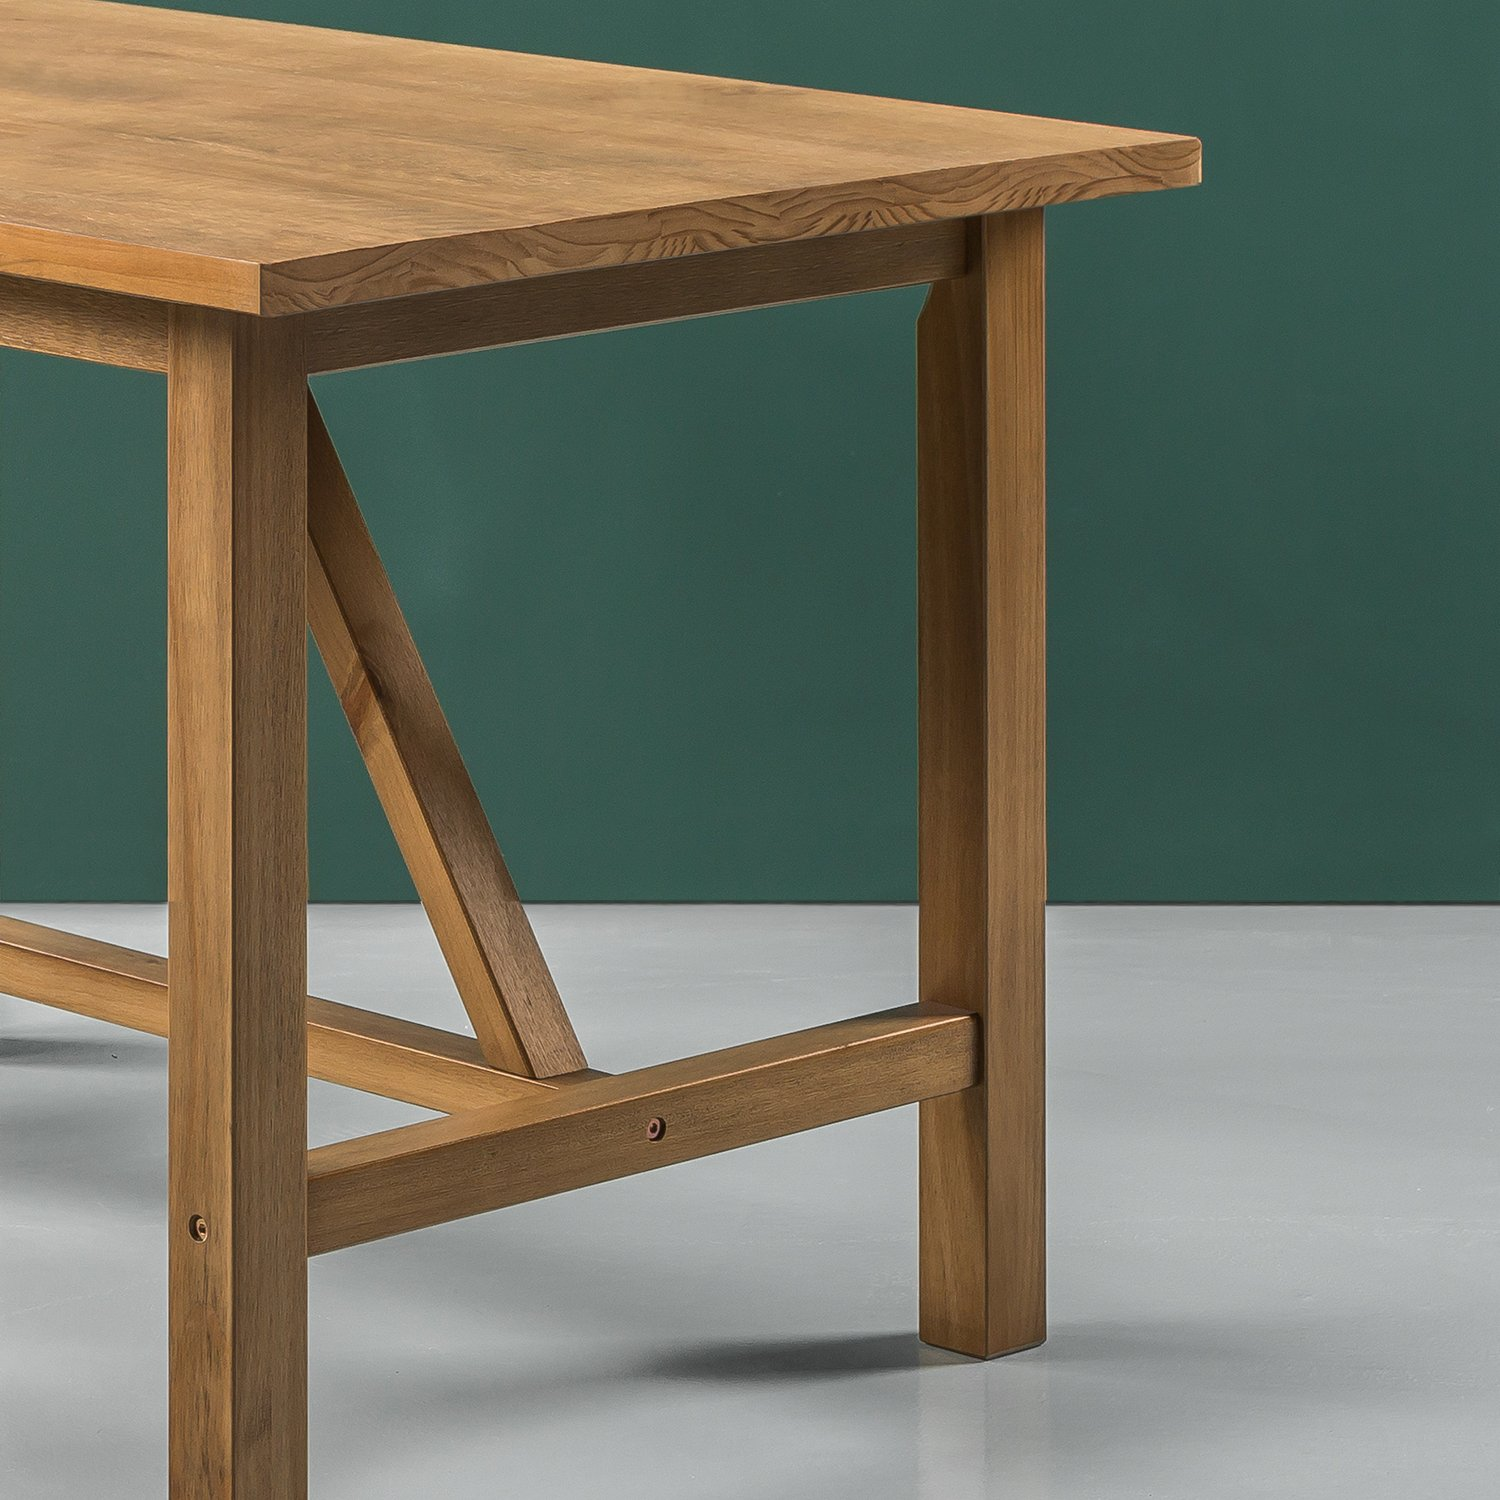 Zinus Brandon Detailed Dining Table in Natural Finish by Zinus (Image #5)